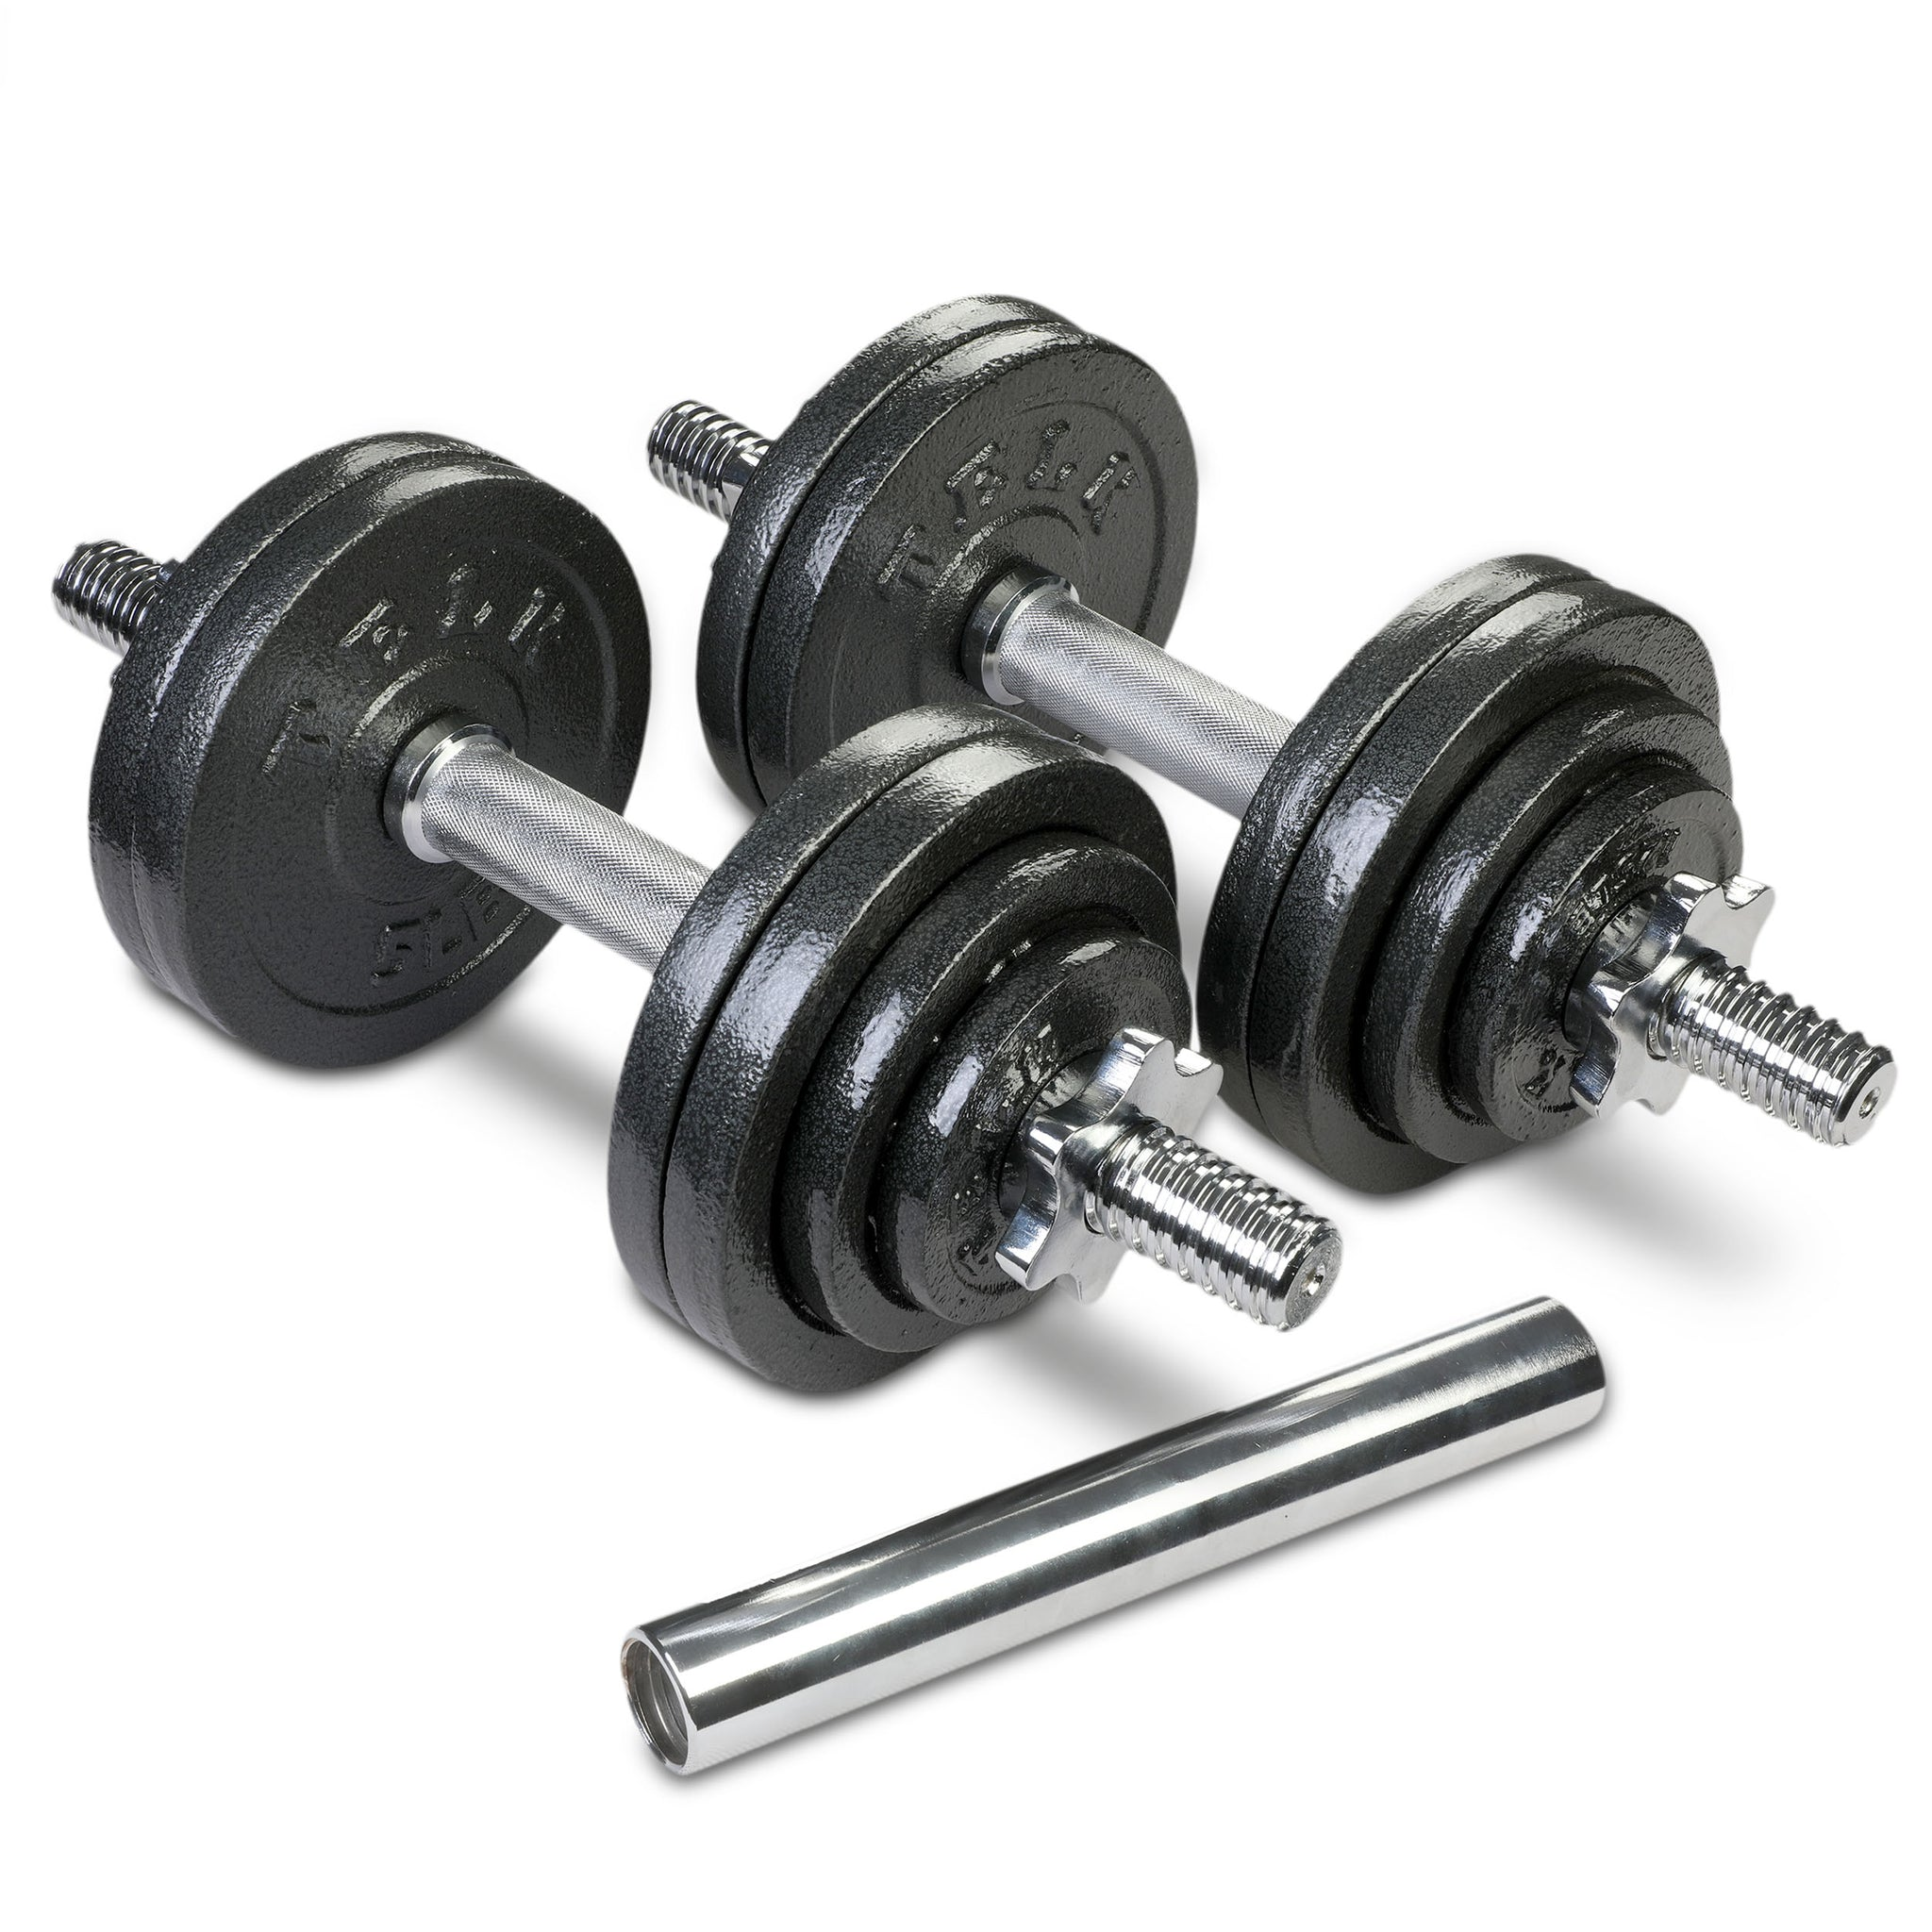 Adjustable Dumbbells 65 lbs + Bar